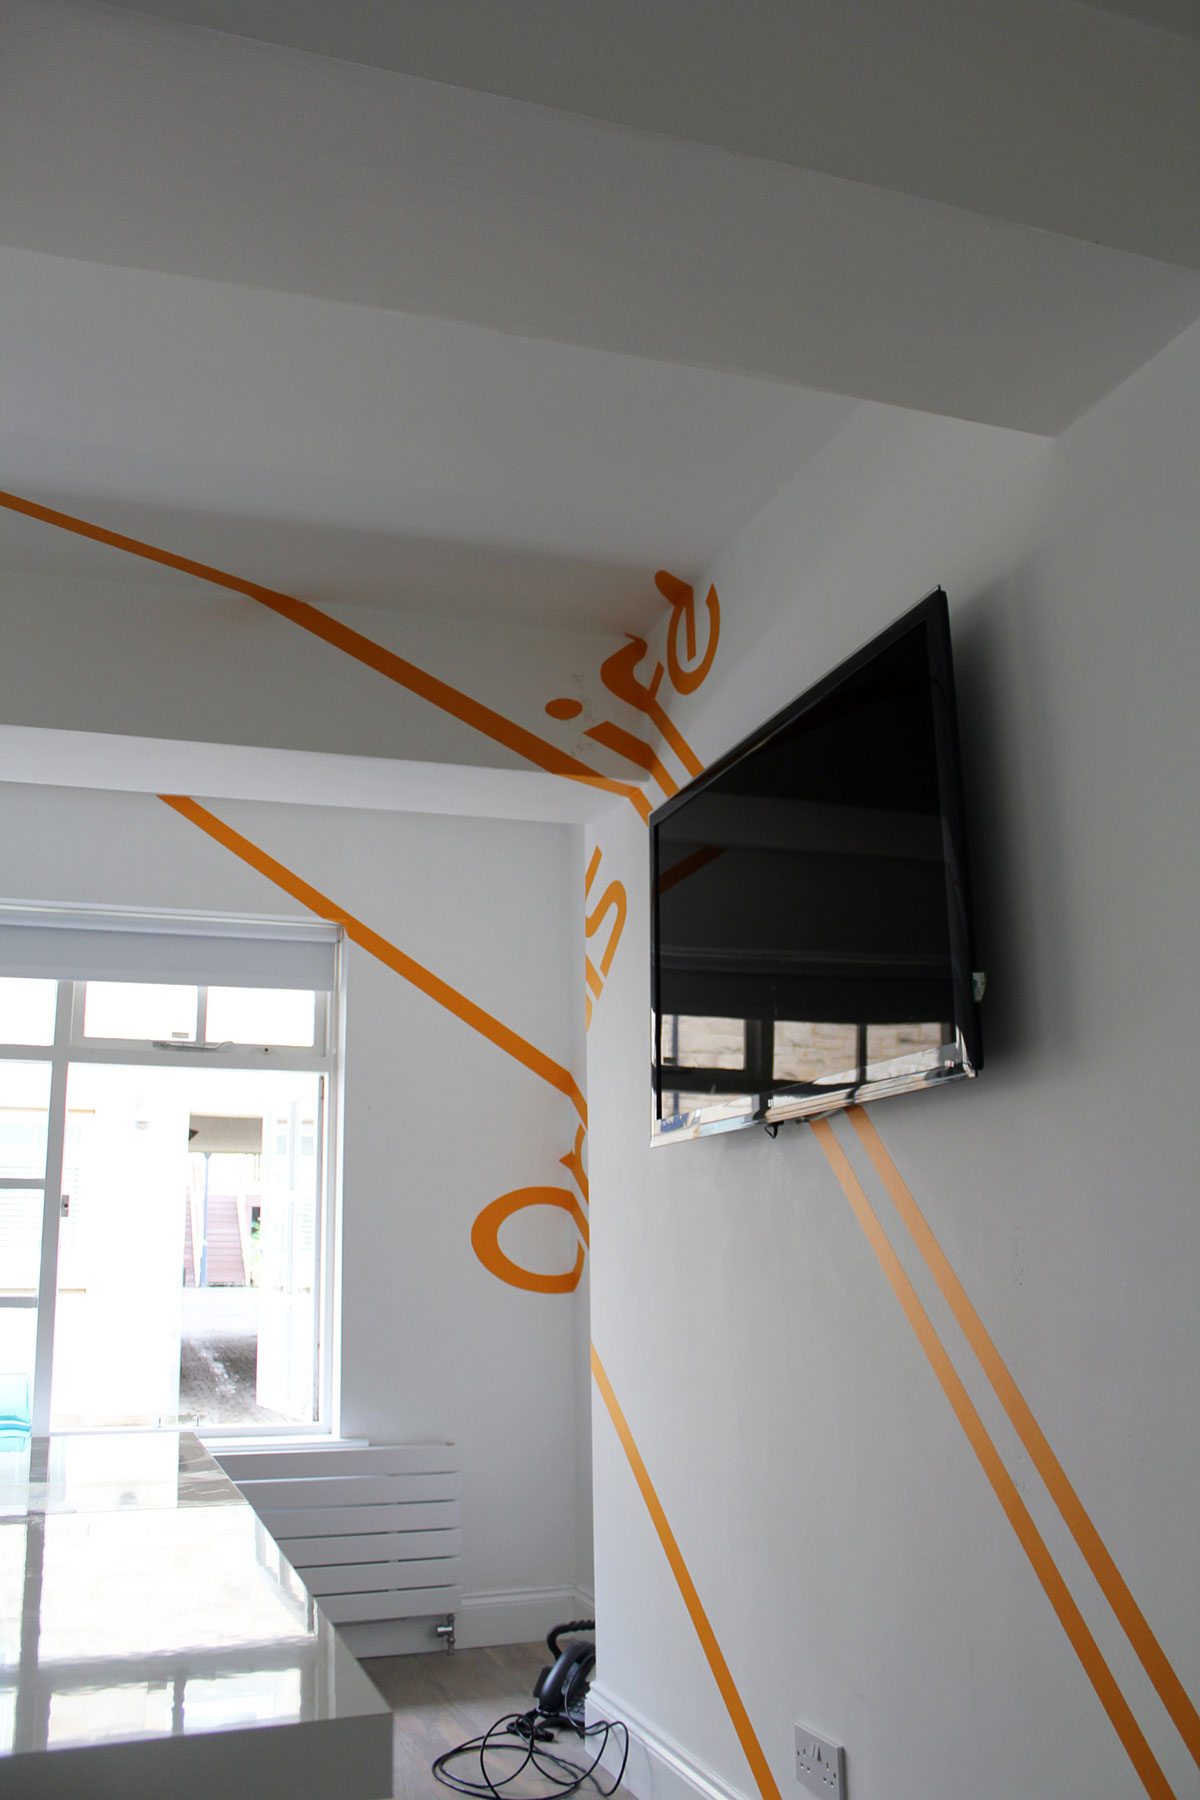 anamorphic graphics with writing on the wall and a tv